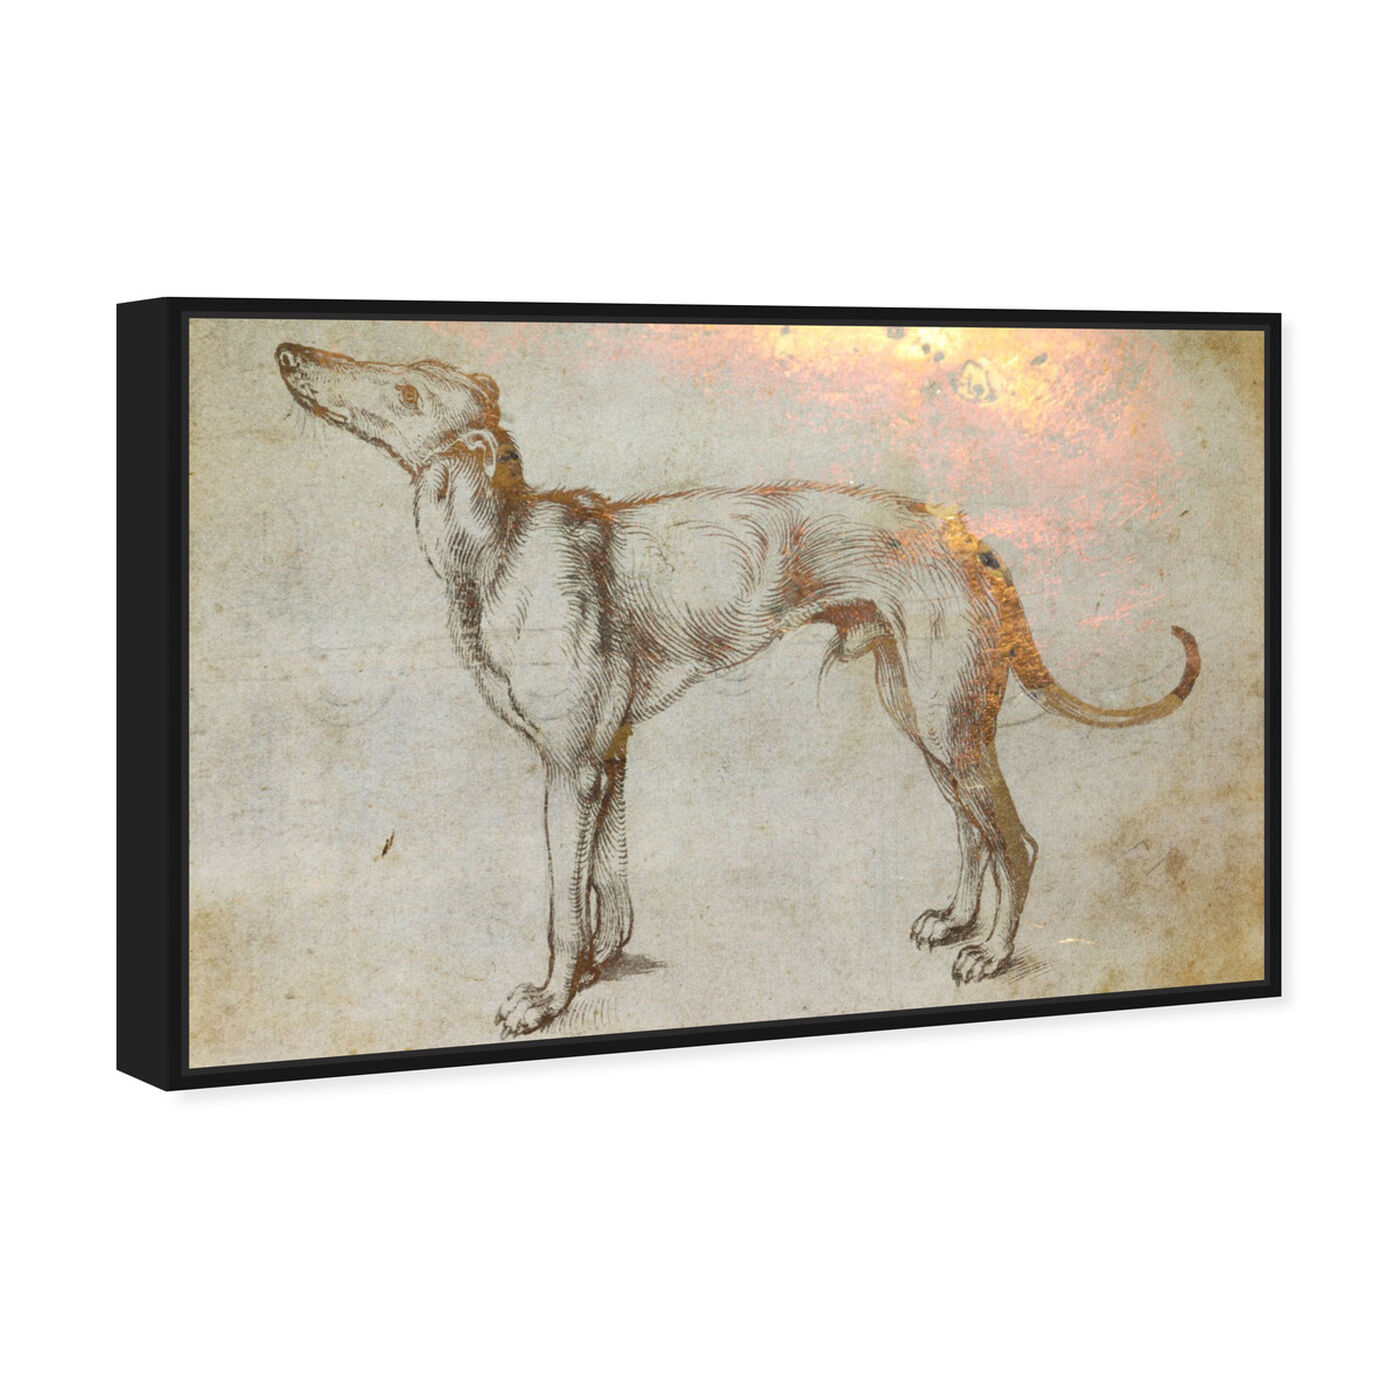 Angled view of Galgo featuring animals and dogs and puppies art.